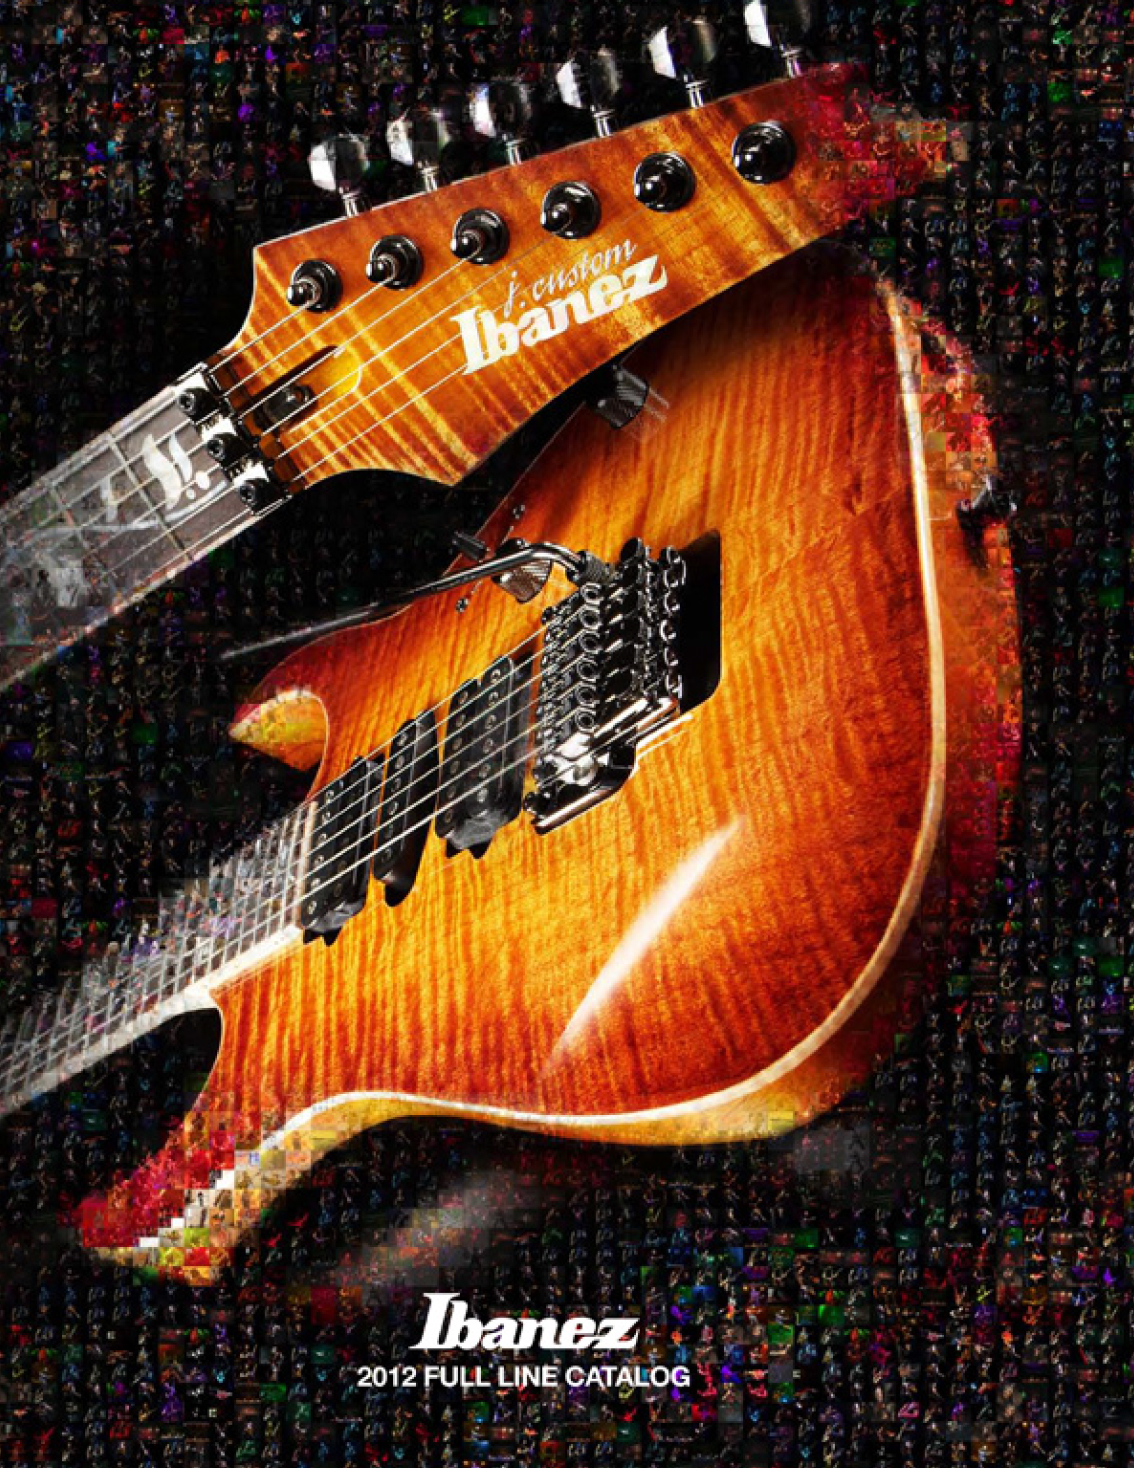 Ibanez Catalog 2012 Japan